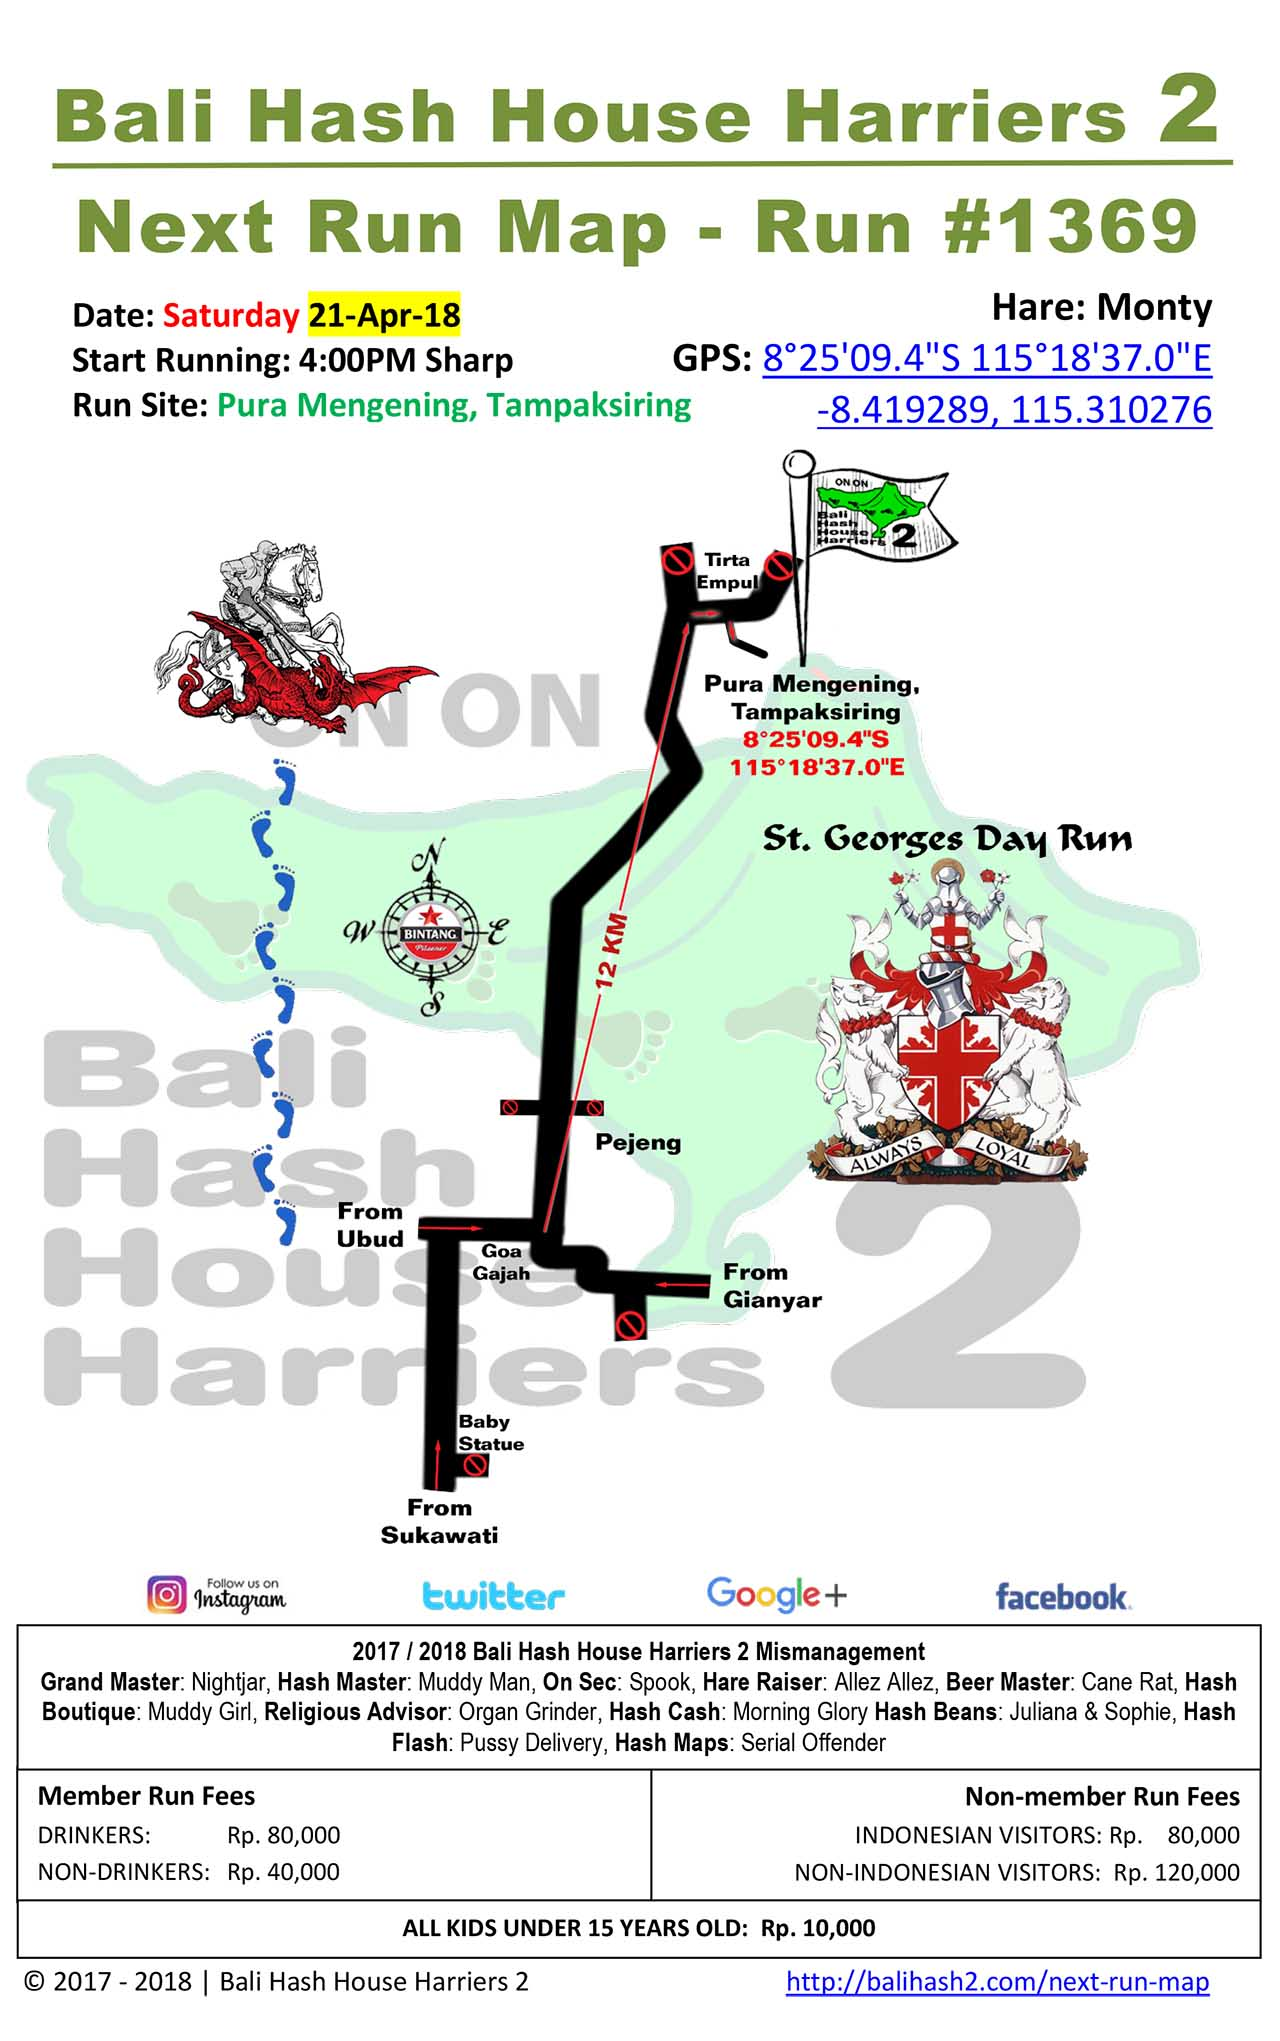 Bali Hash House Harriers 2 Next Run Map #1369 Pura Mengening, Tampaksiring